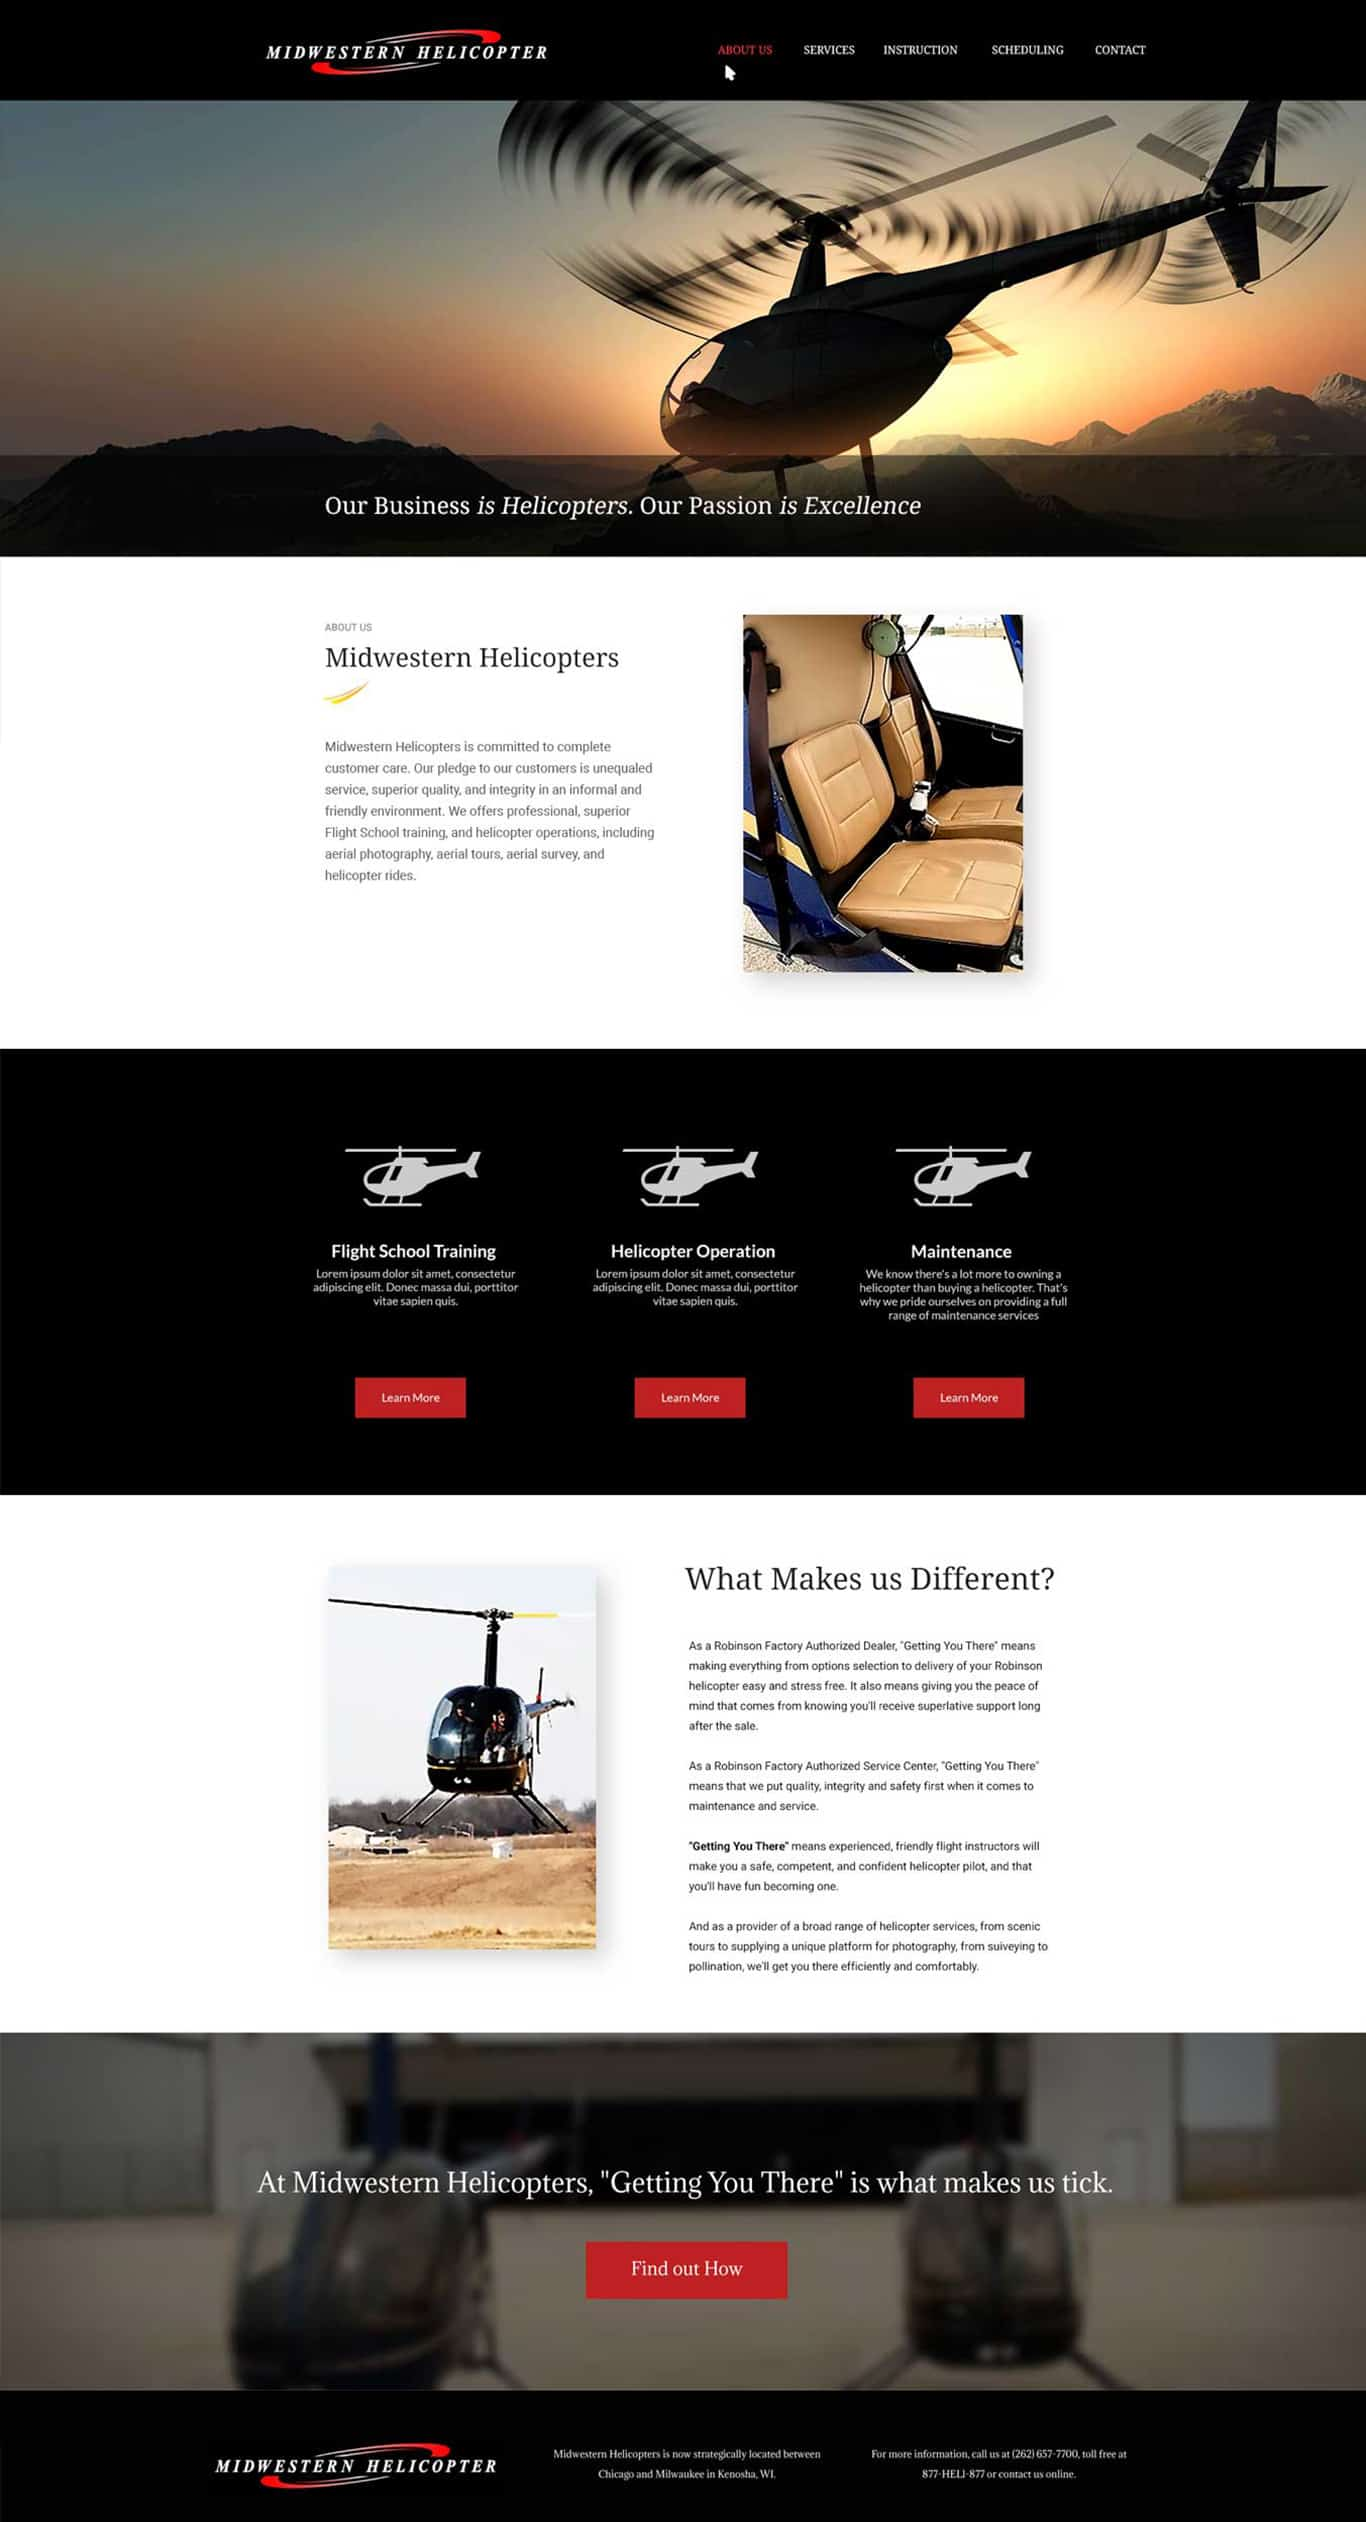 Midwestern Helicopters